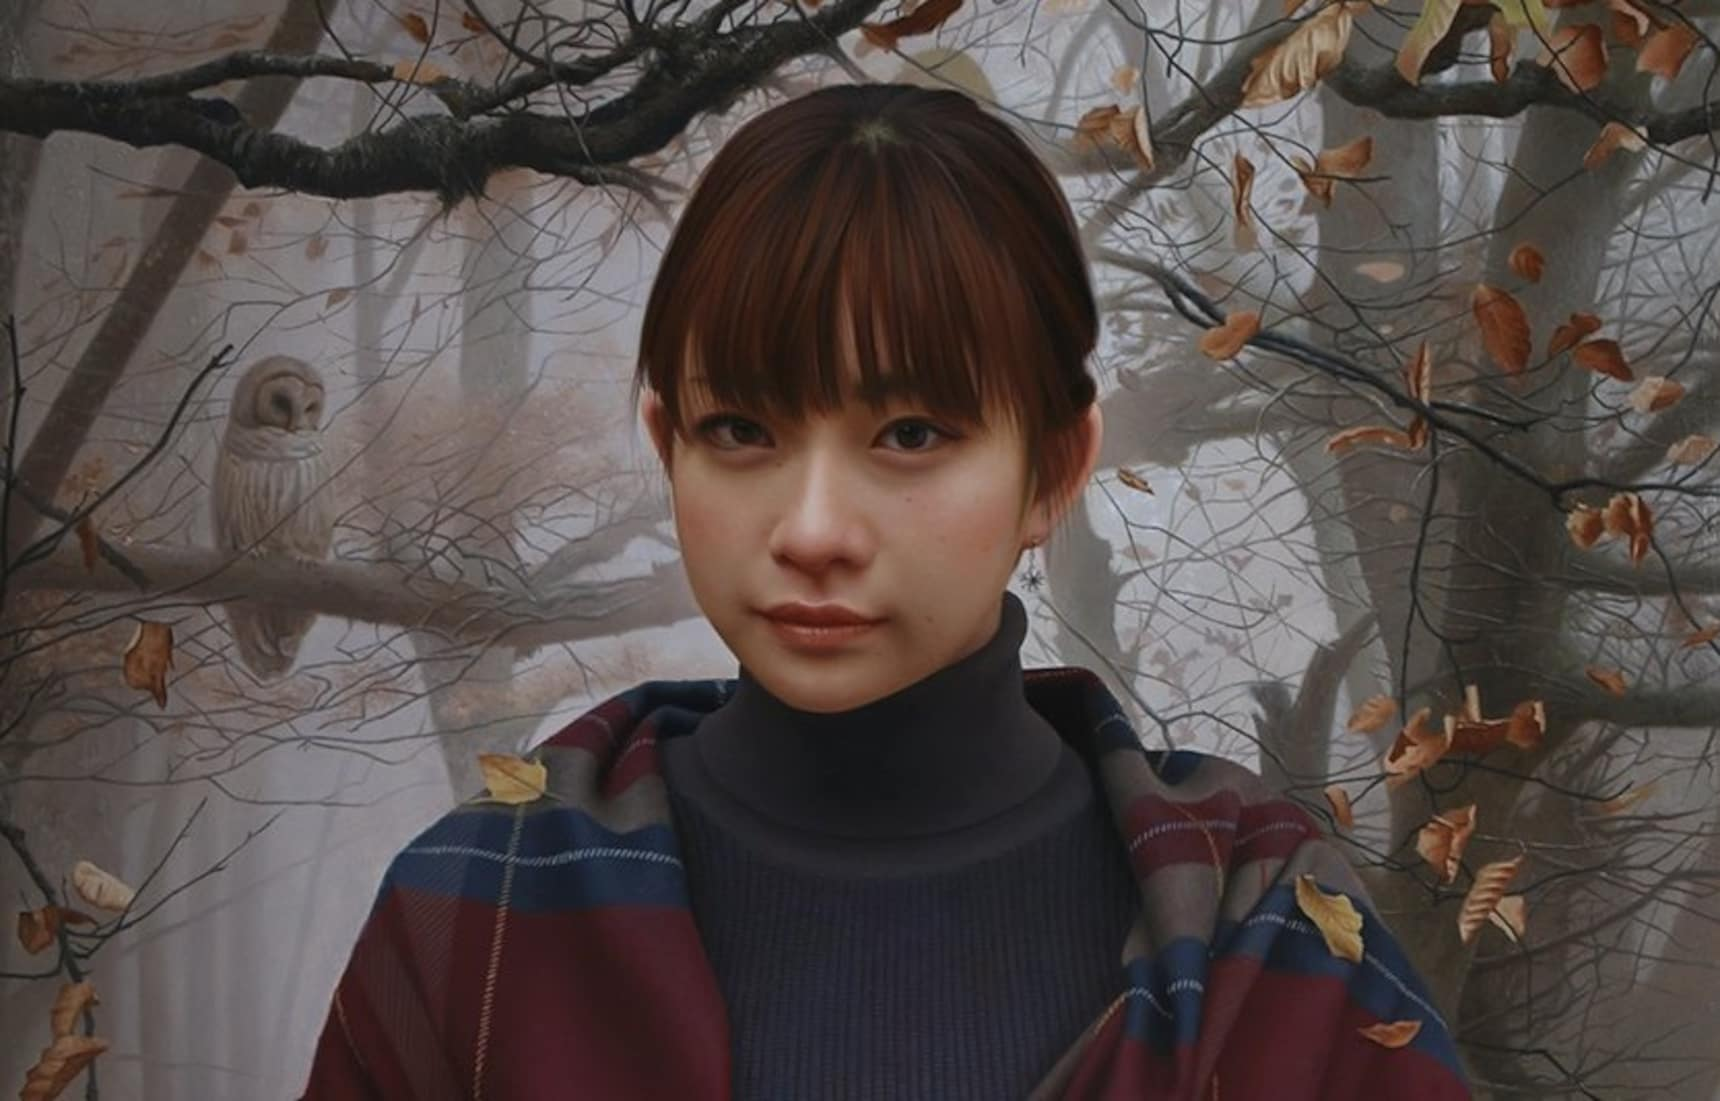 Japanese Painter Creates Photo-real Portraits